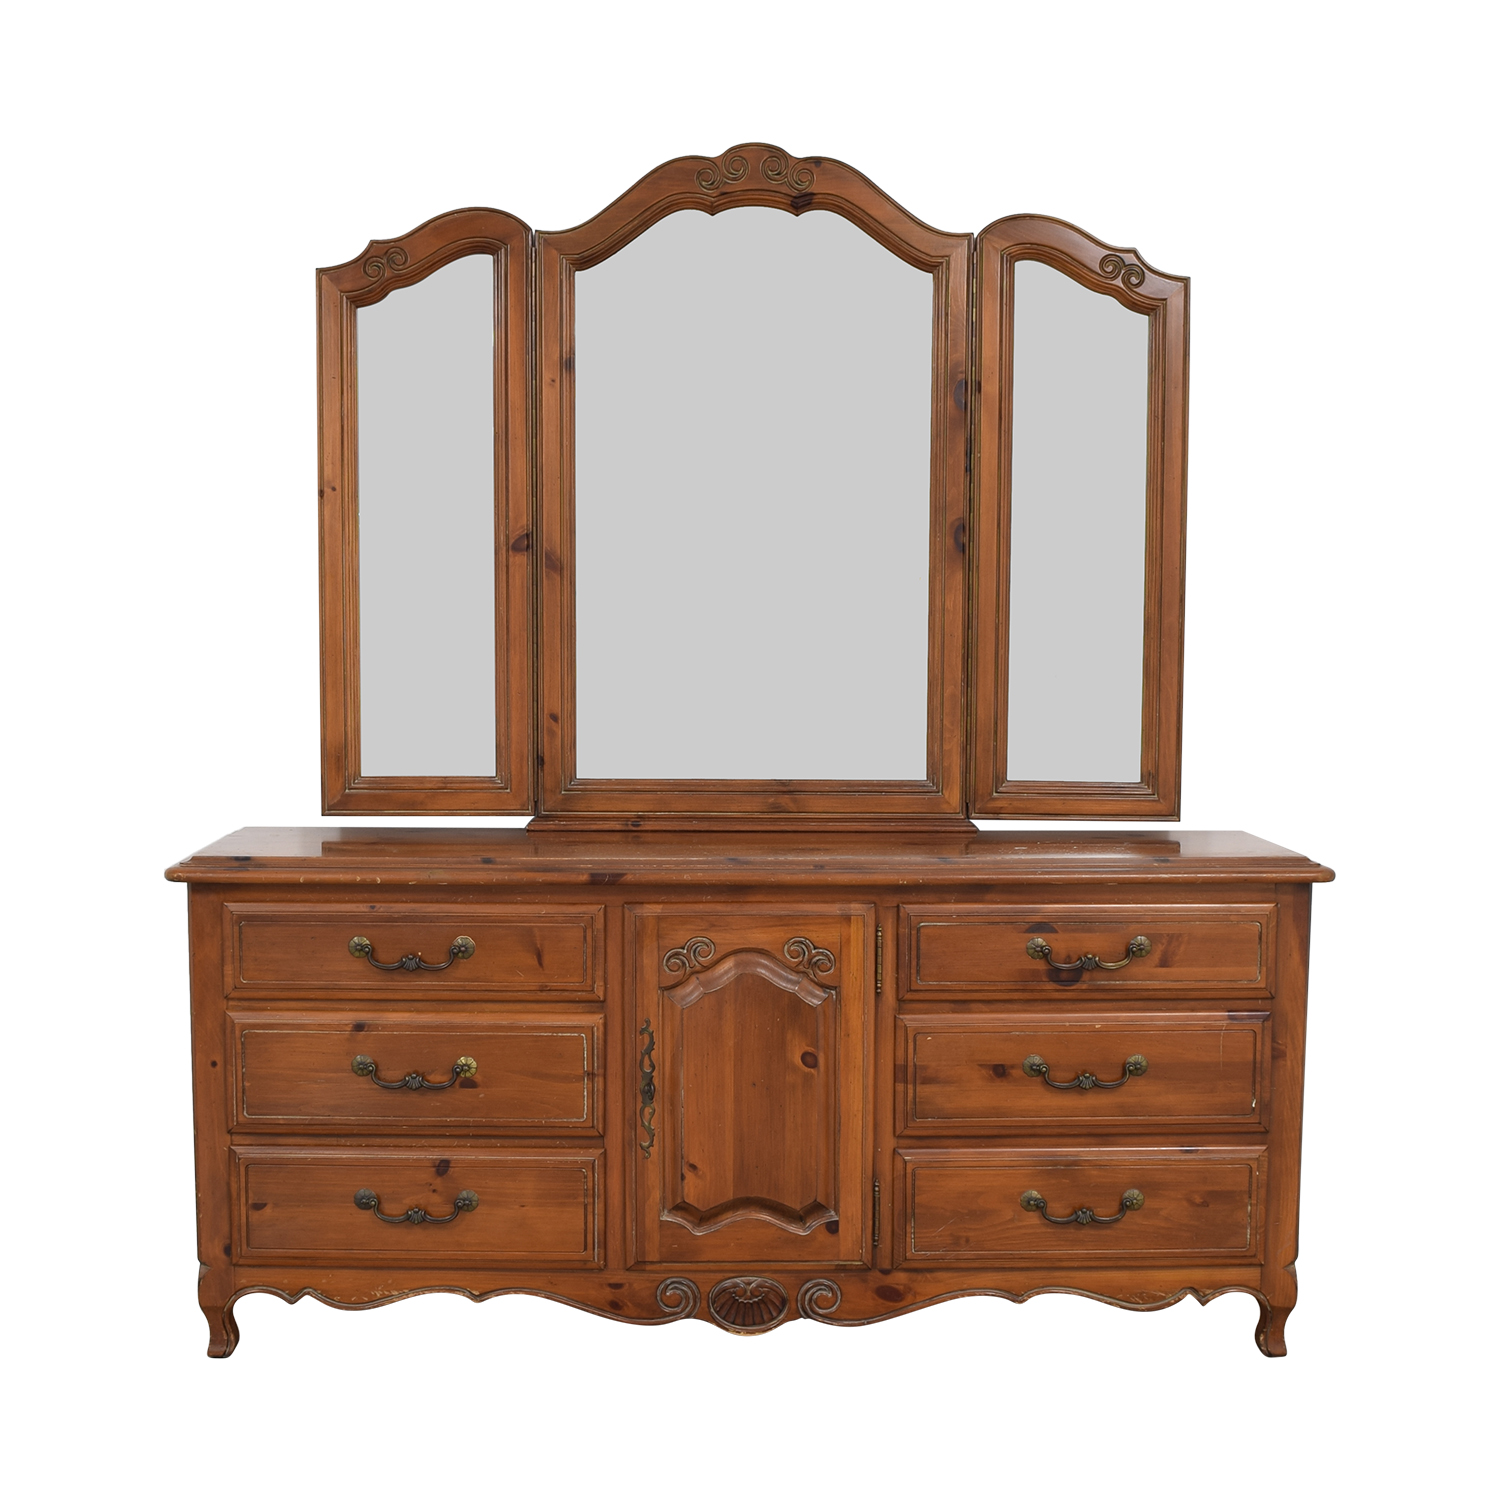 shop Ethan Allen Ethan Allen Bedroom Dresser with Vanity online